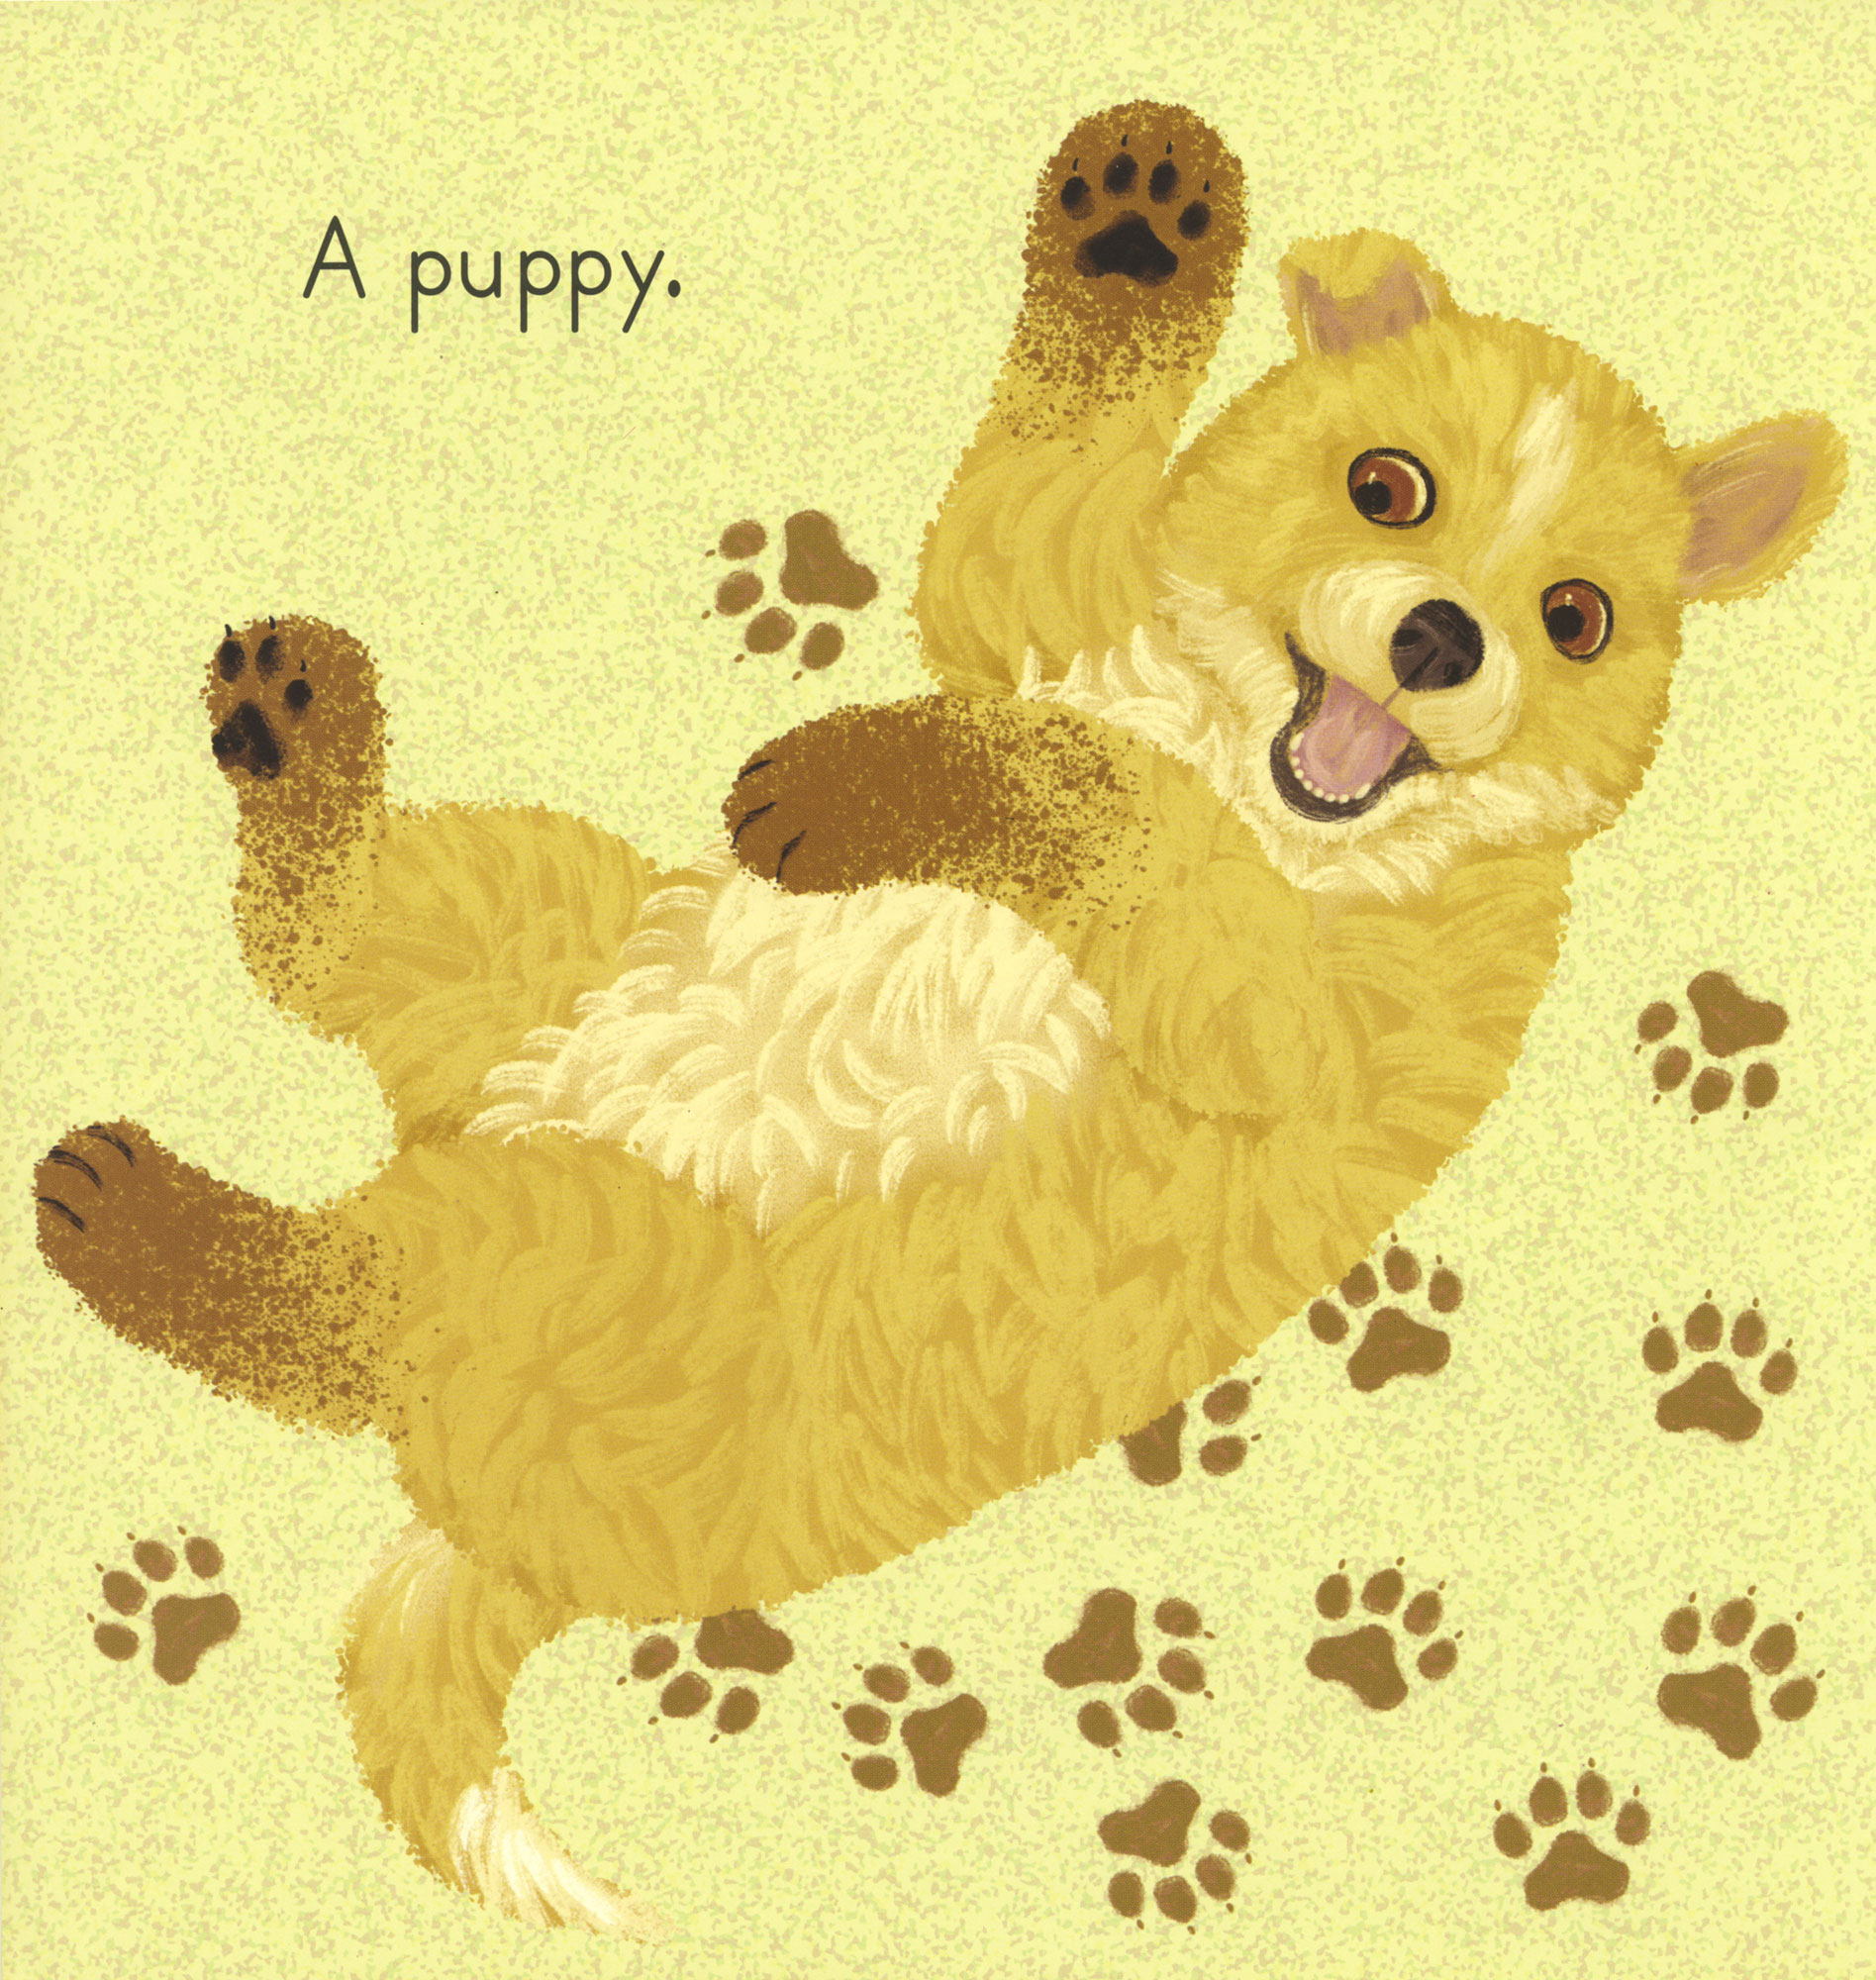 A puppy walks in the mud, that's who!